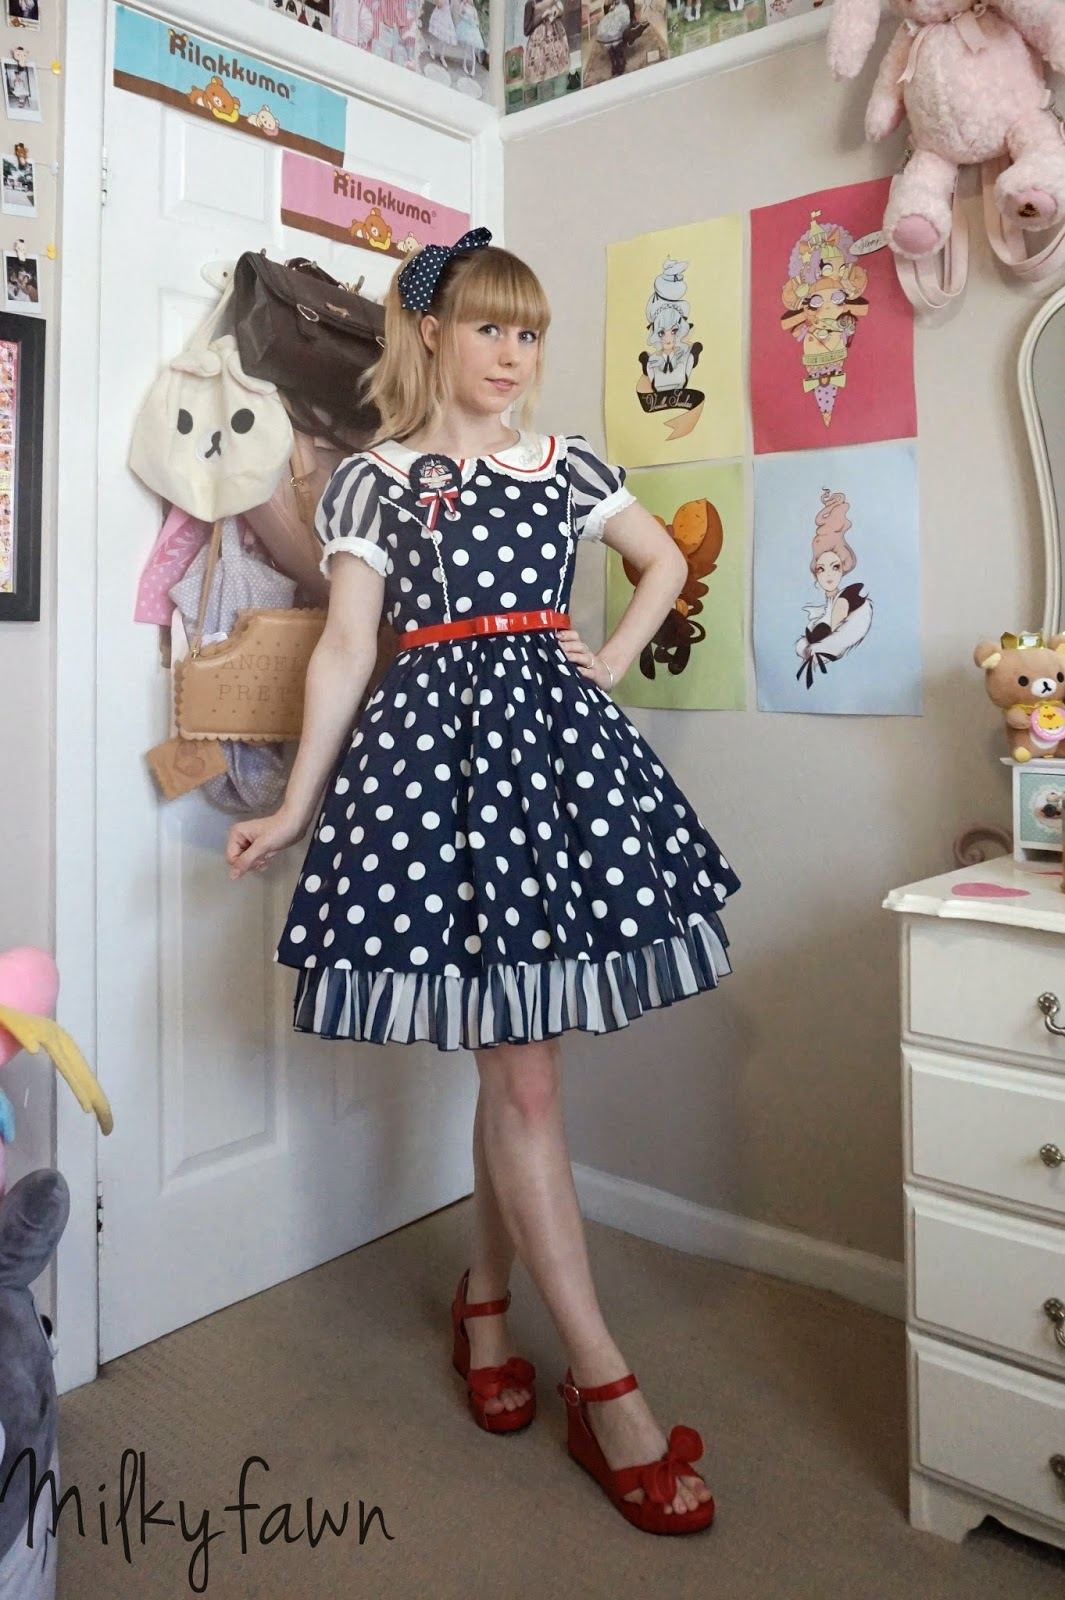 lolitas heaven Super casual <b>lolita</b> coordinate for a hot day out for lunch with friends.